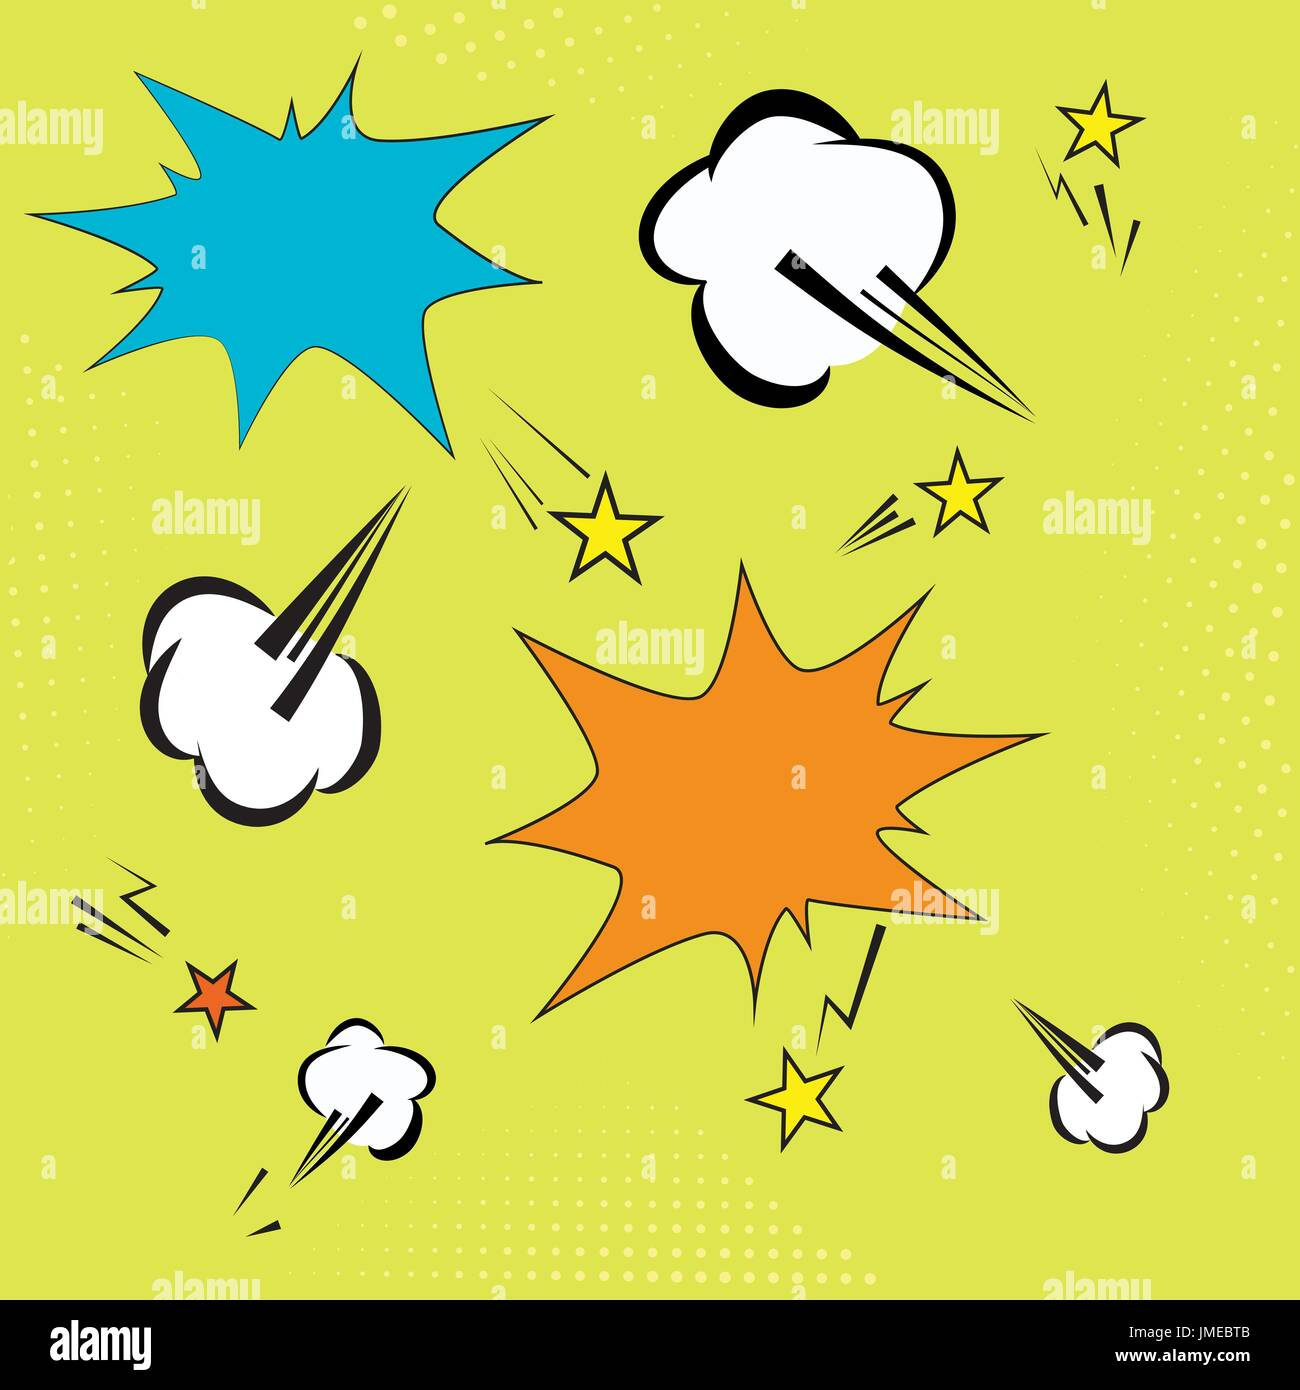 background with pop art elements. yelow dots, clouds and speech star bubble for text. retro vector illustration for design - Stock Image